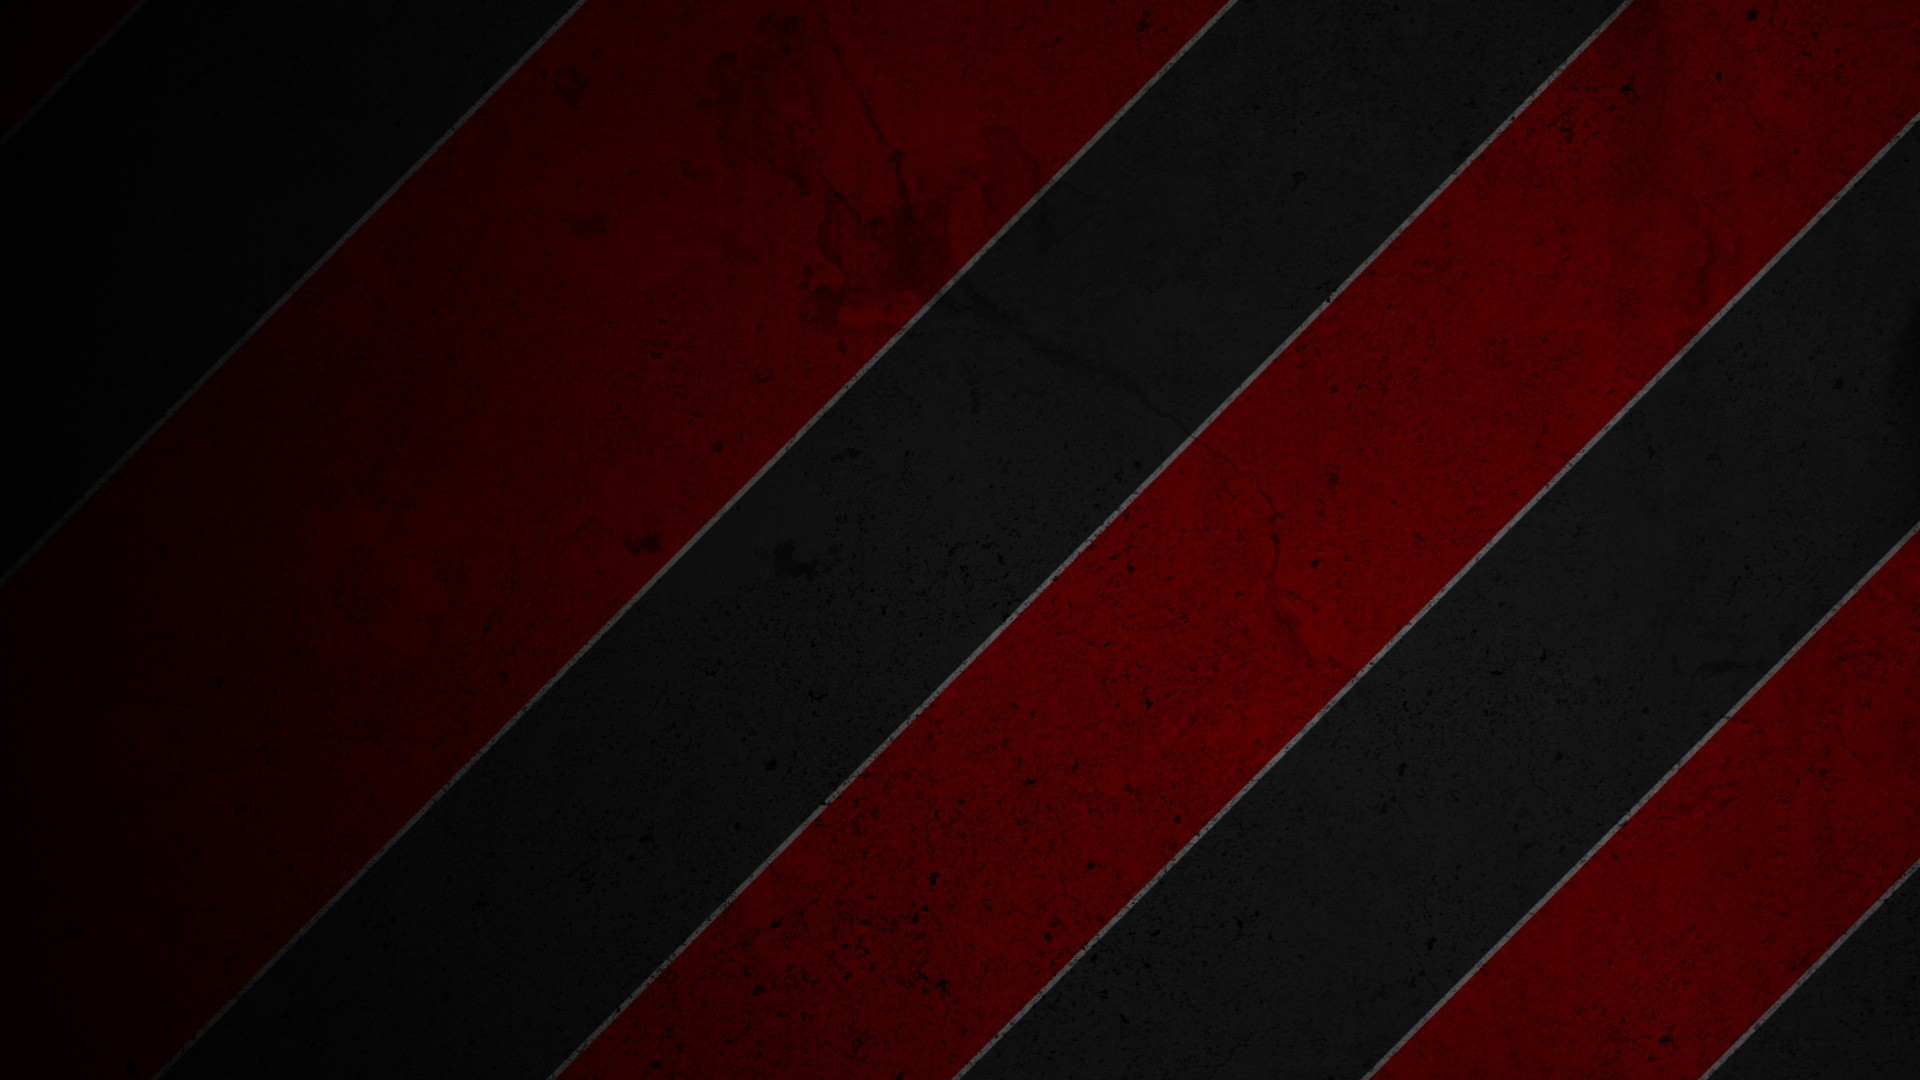 310915-black-and-red-background-1920×1080-for-iphone-5s